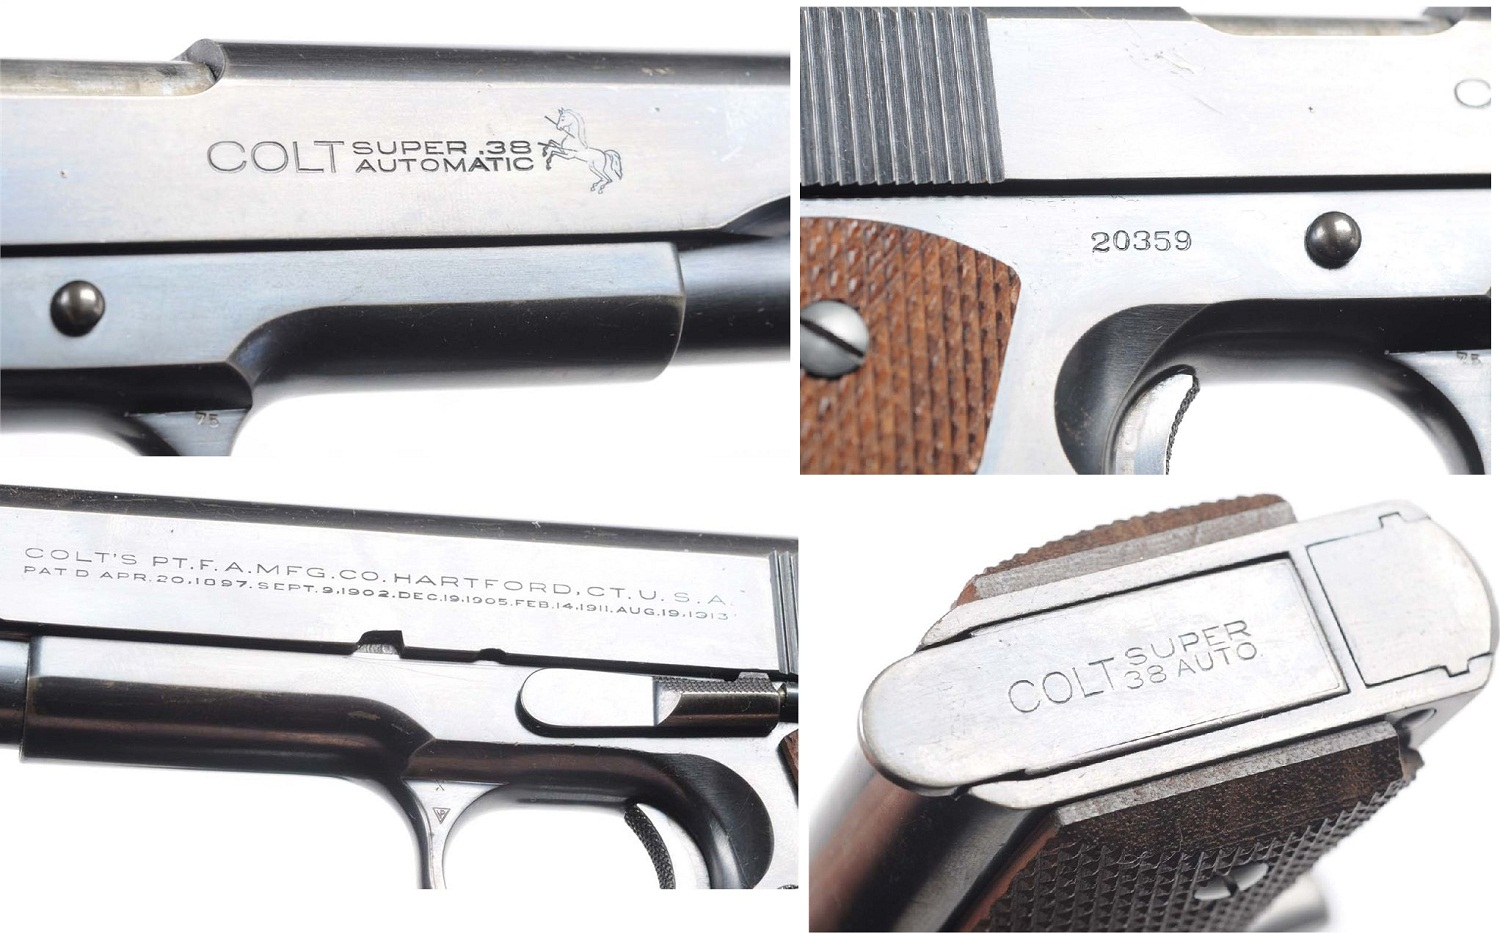 Colt Government caliber .38 Super